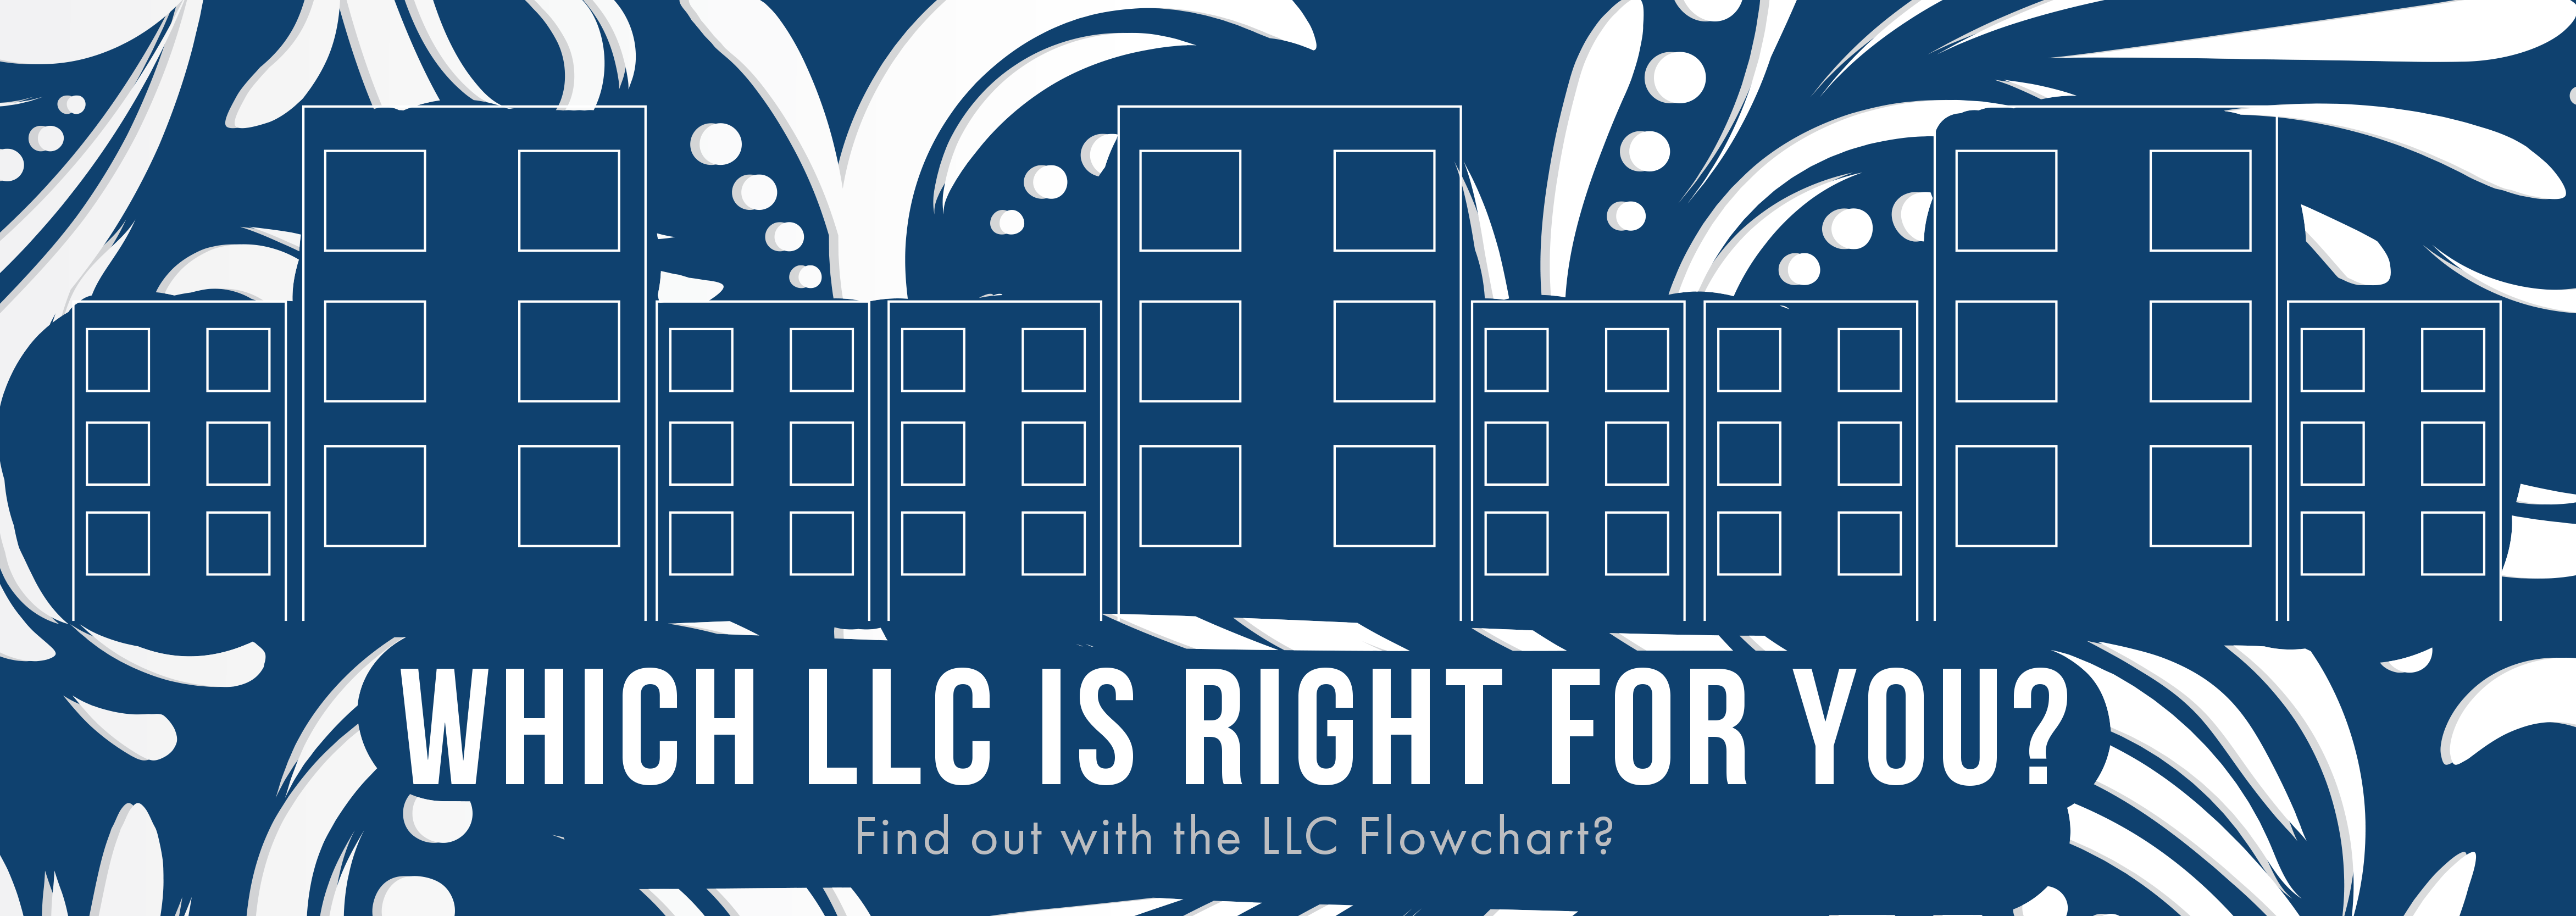 Which LLC is right for you? Find out with the LLC Flowchart